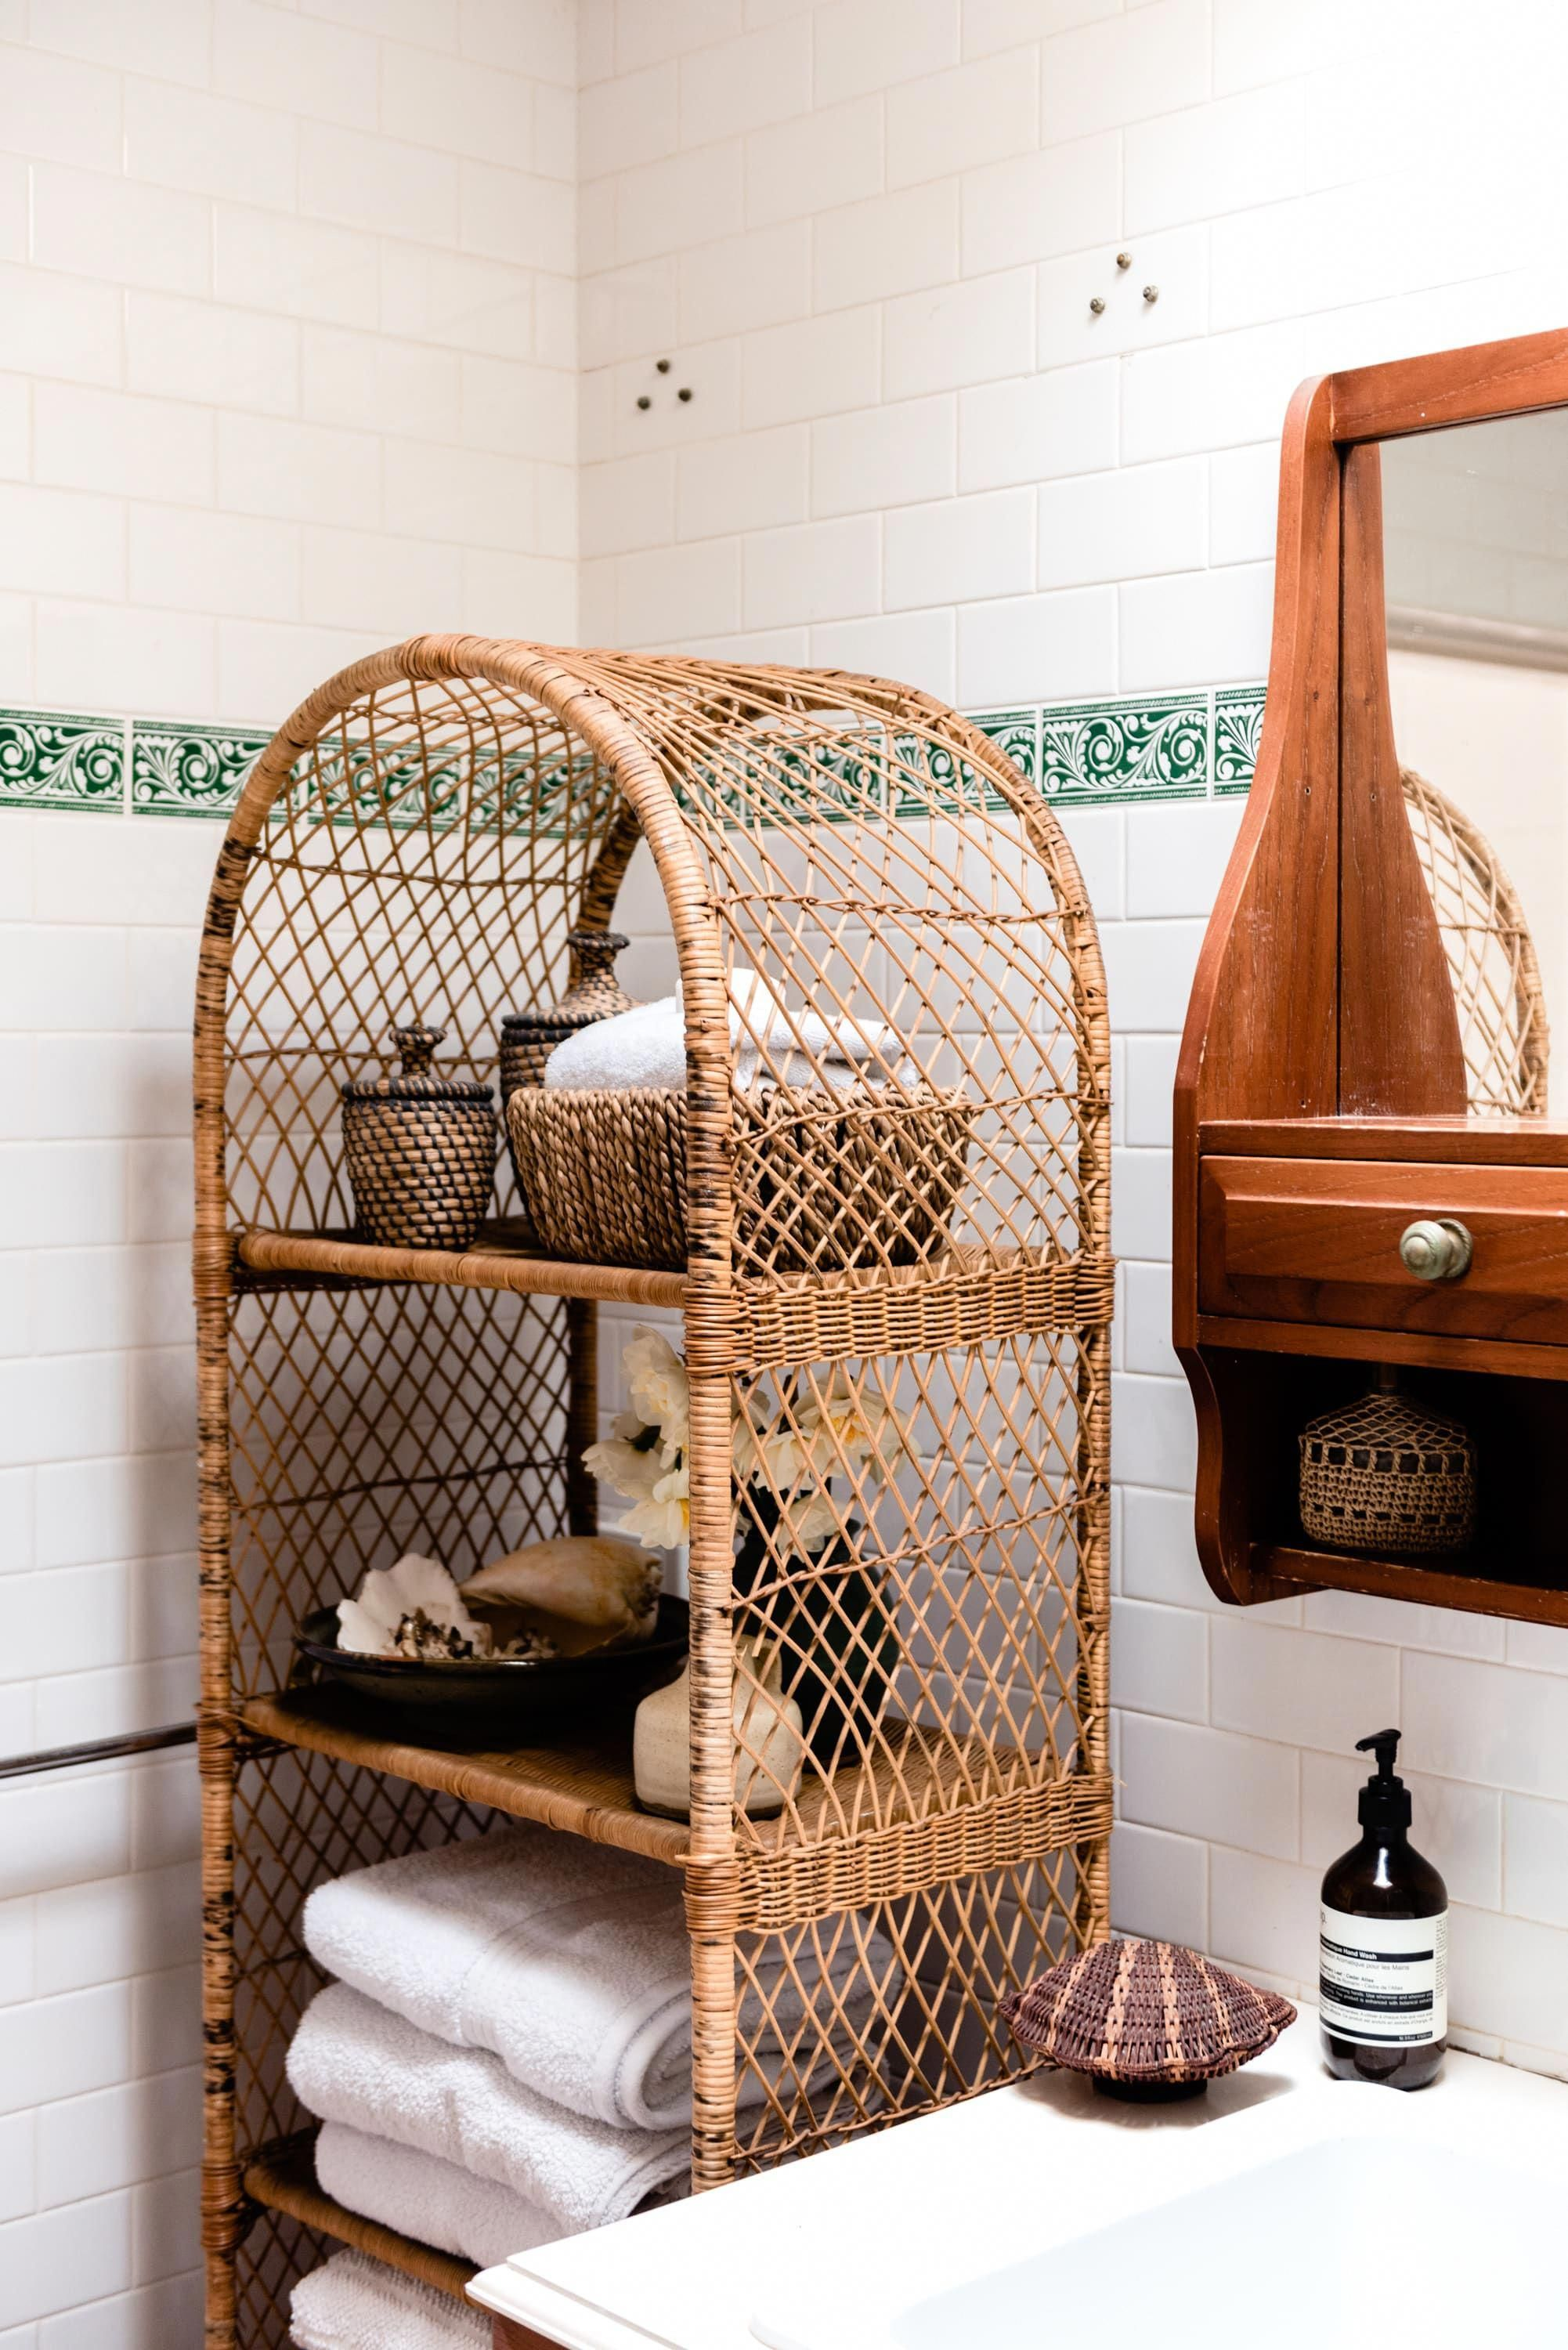 Vintage Finds Fill Every Corner Even In The Bathroom Where These Shelves Provide The Perfect Storage Solution Moderninterio Eclectic Home Interior Home Decor